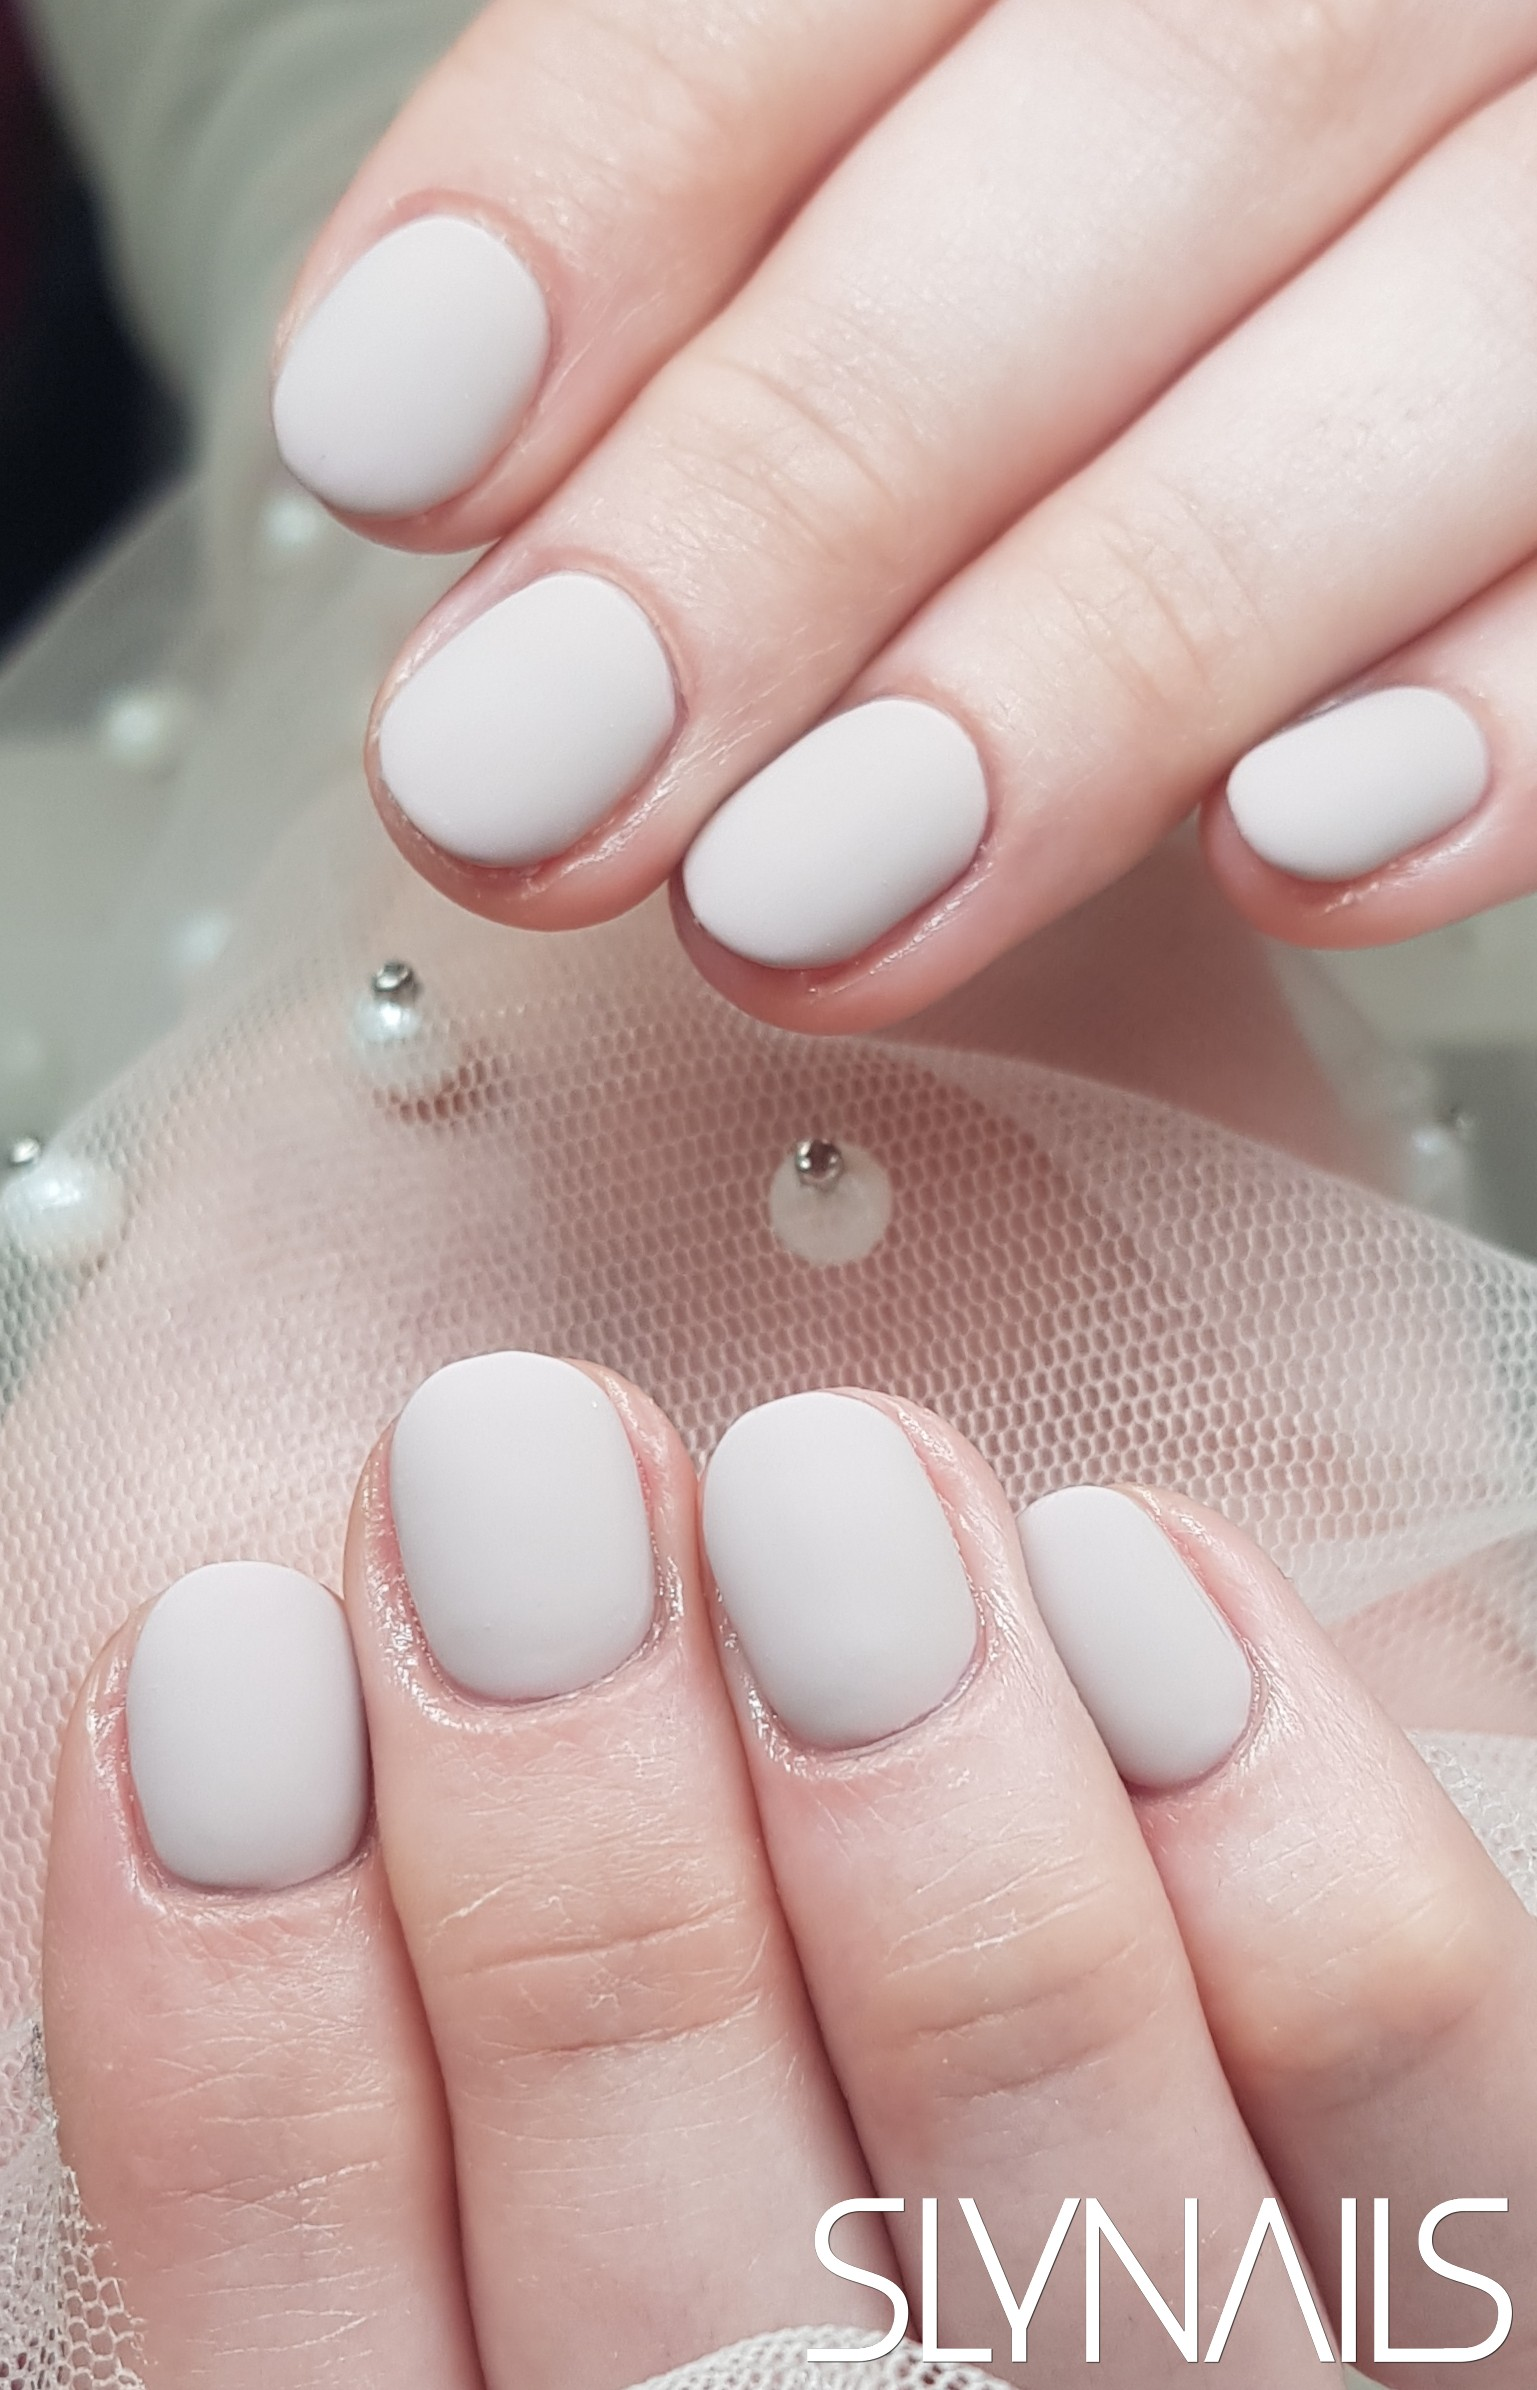 Gel-lac (gel polish), Grey, One color, Rounded, Matte, Without decoration